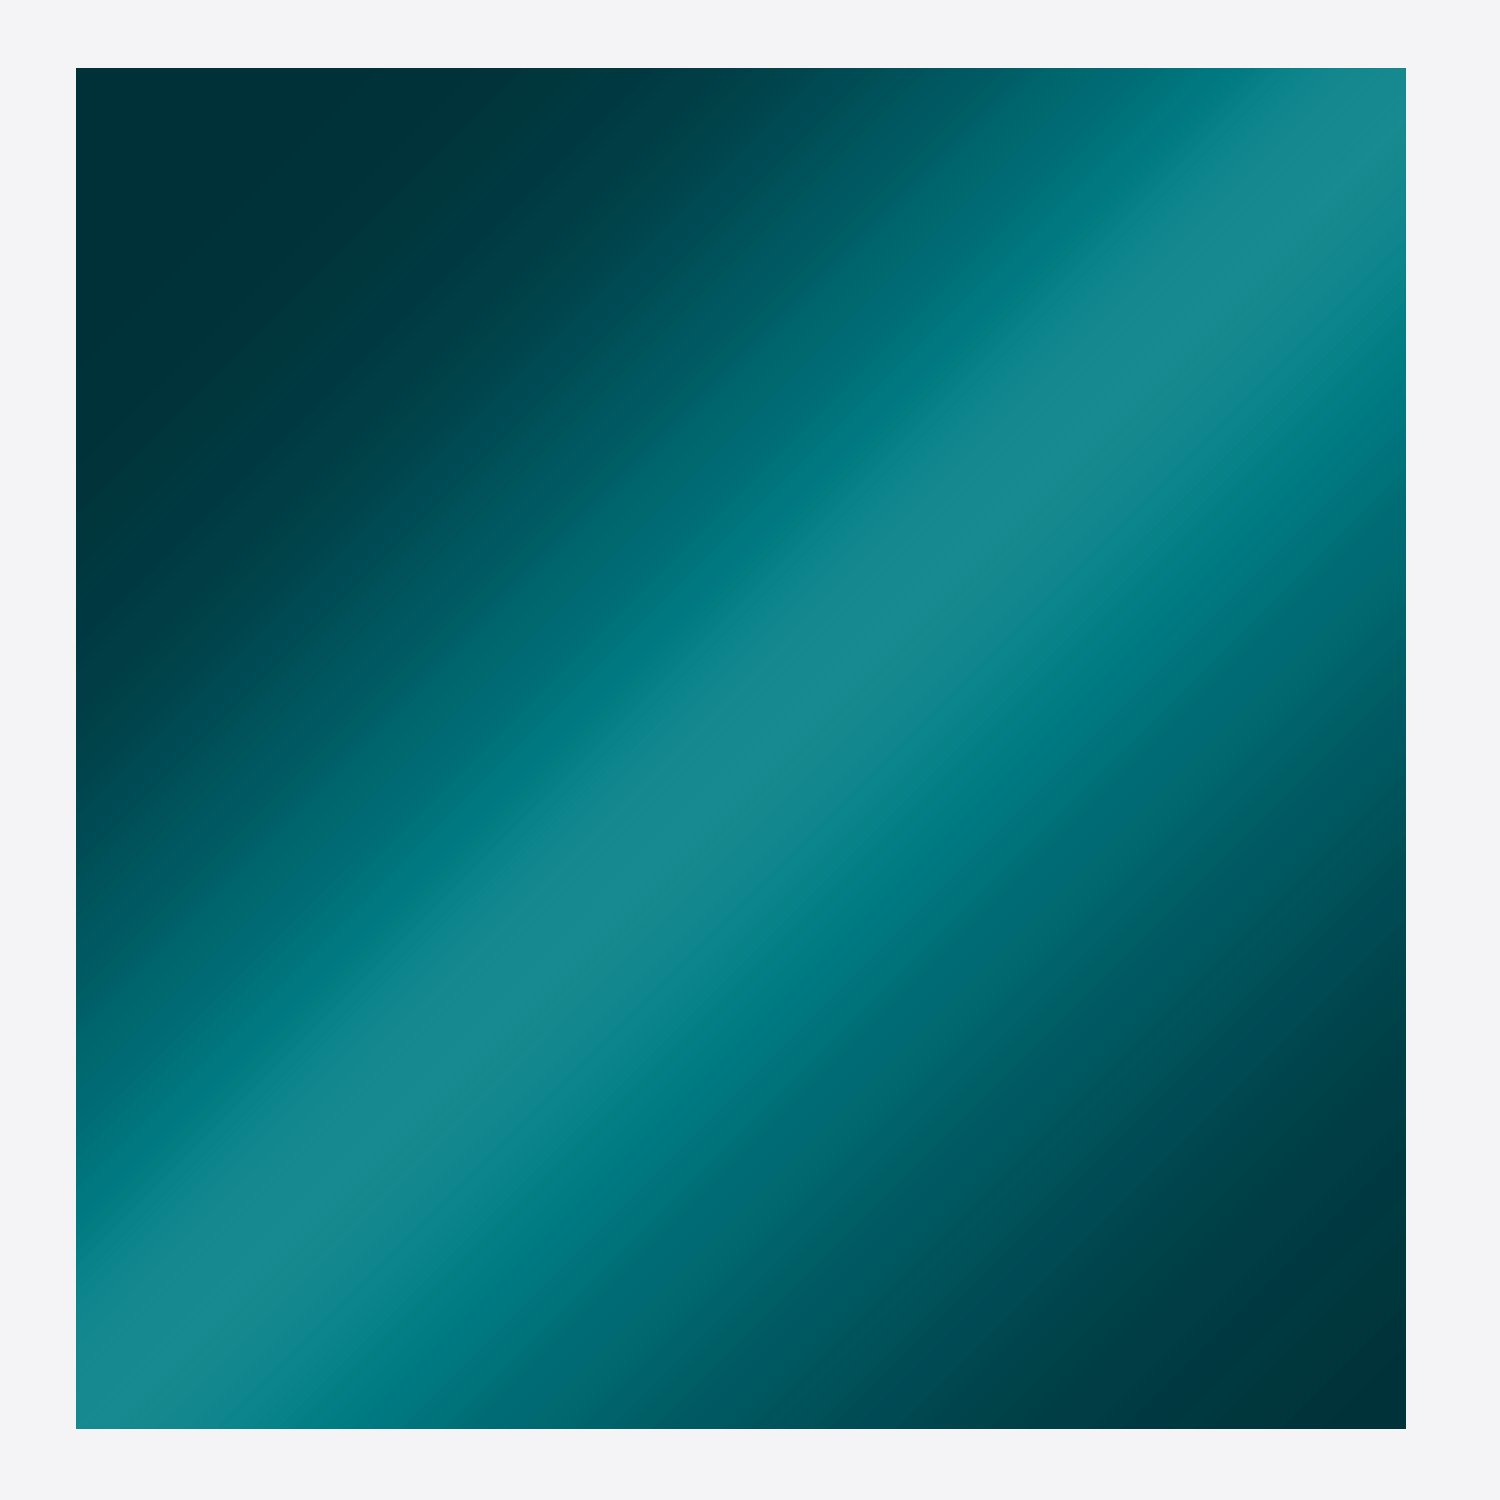 Neewer Correction Gel Light Filter 12x12 inches/30x30 centimeters (Blue) 10089434